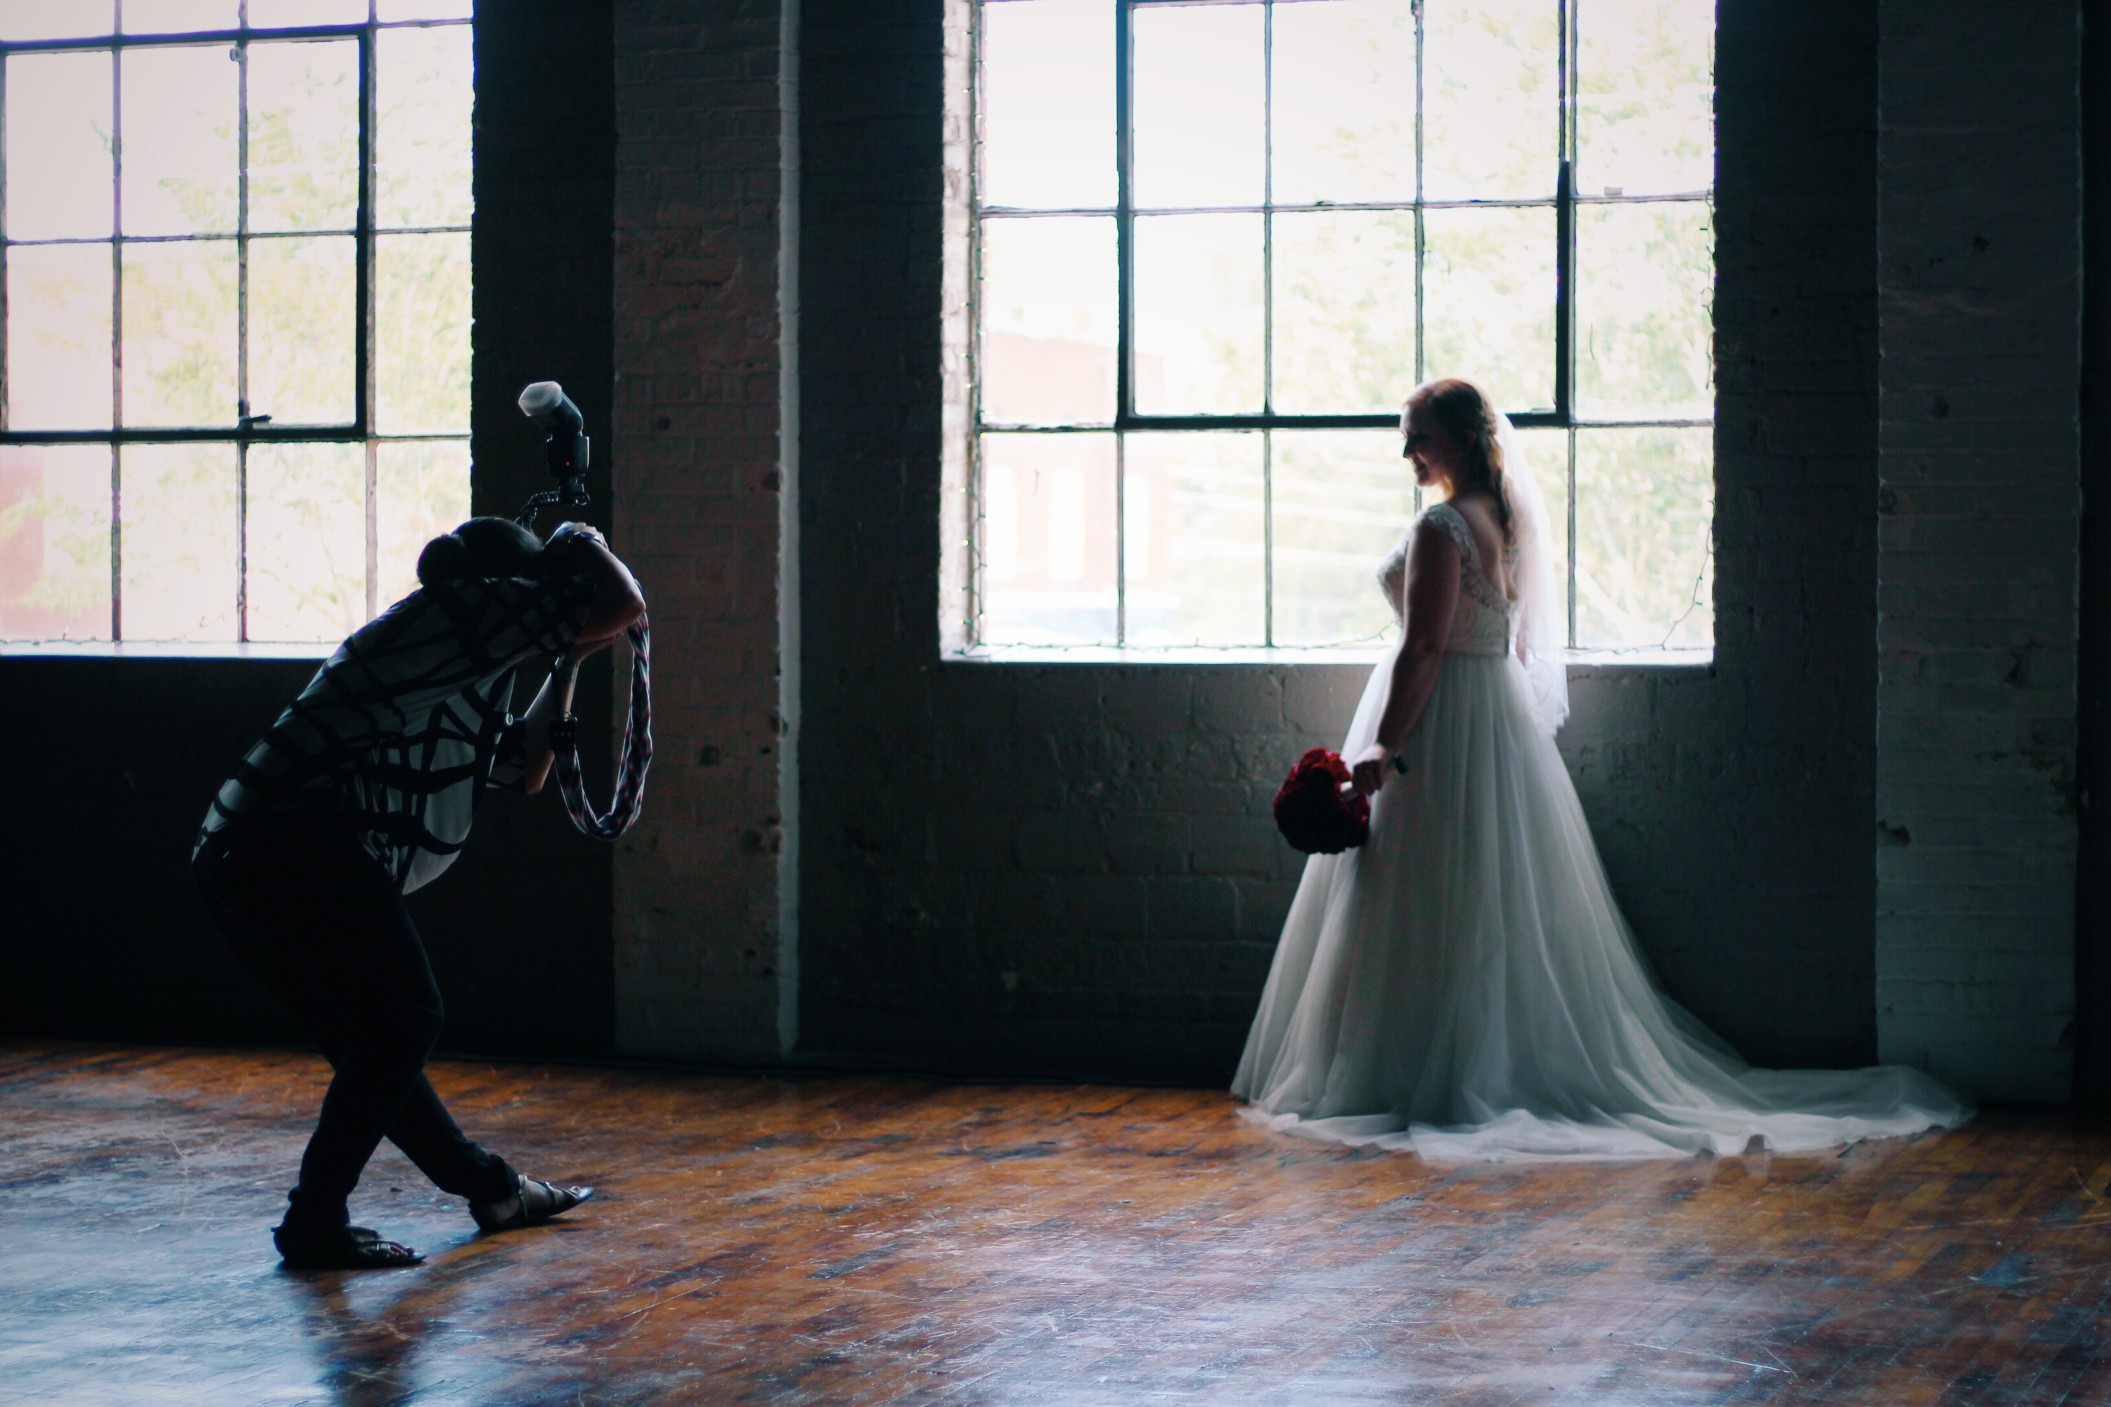 Wedding Photos and How Light can get stunning effects